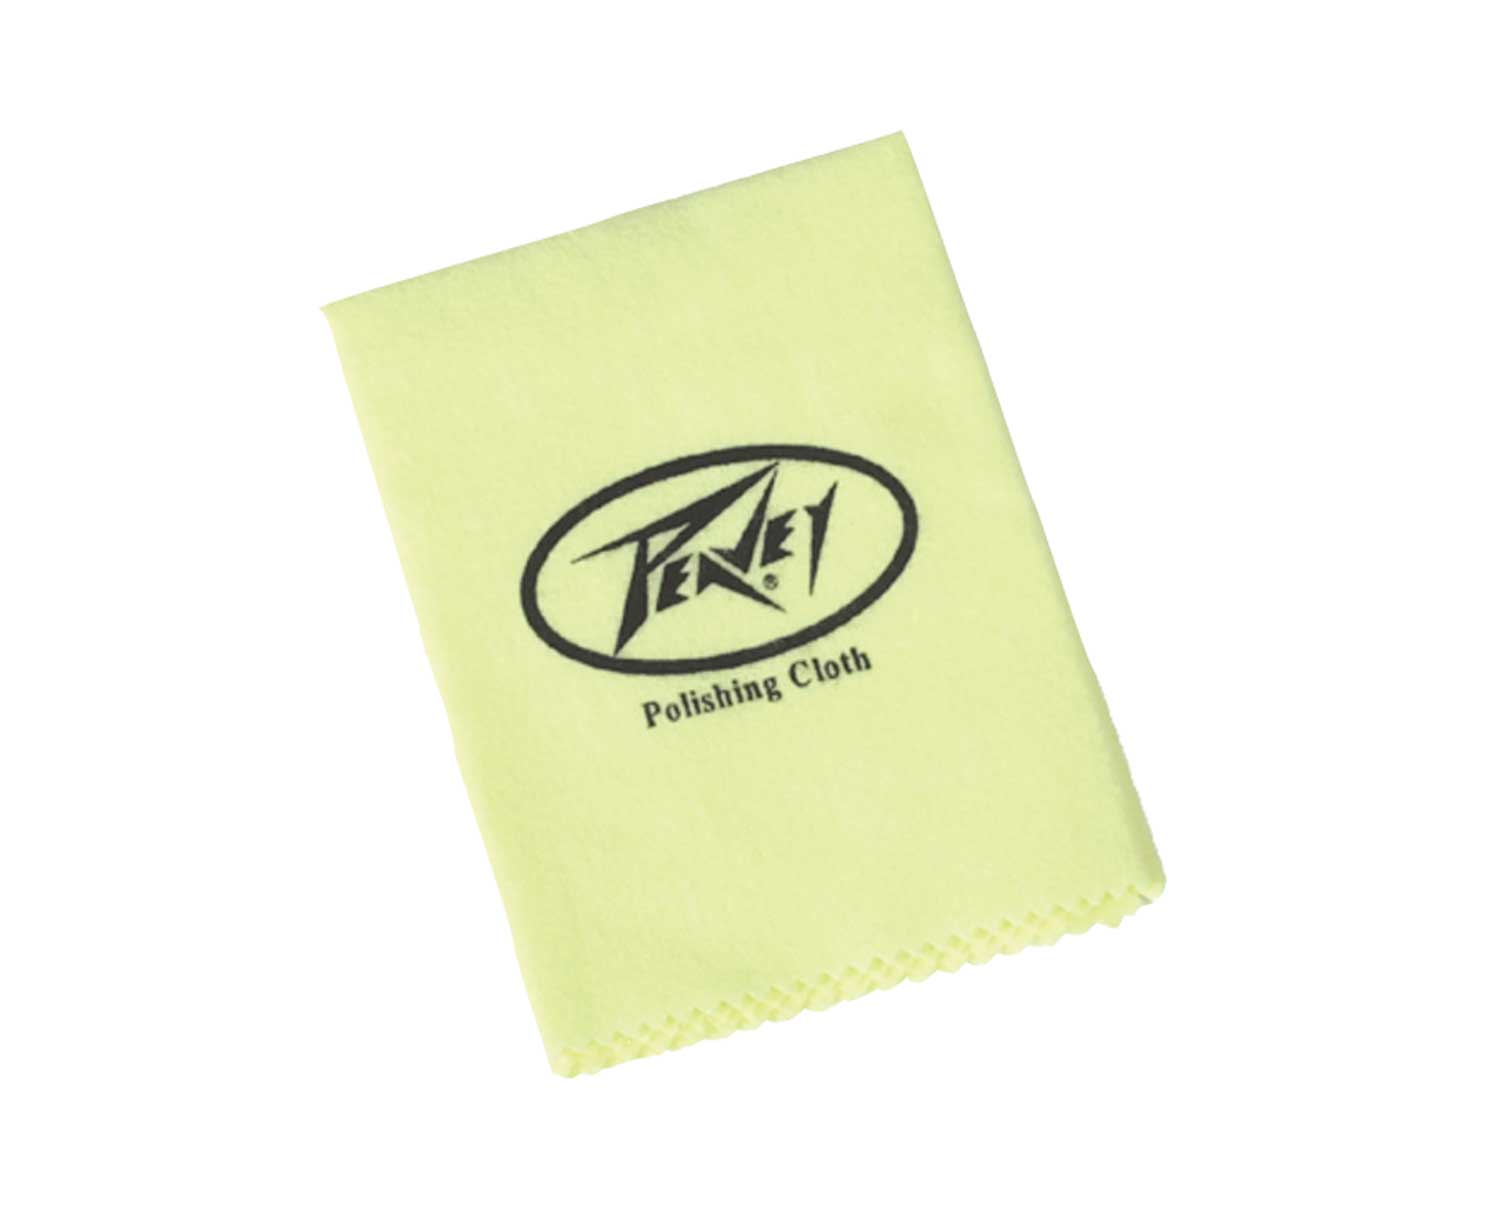 Peavey Individually Packed Guitar Care & Cleaning Yellow Polish Cloth (484330)